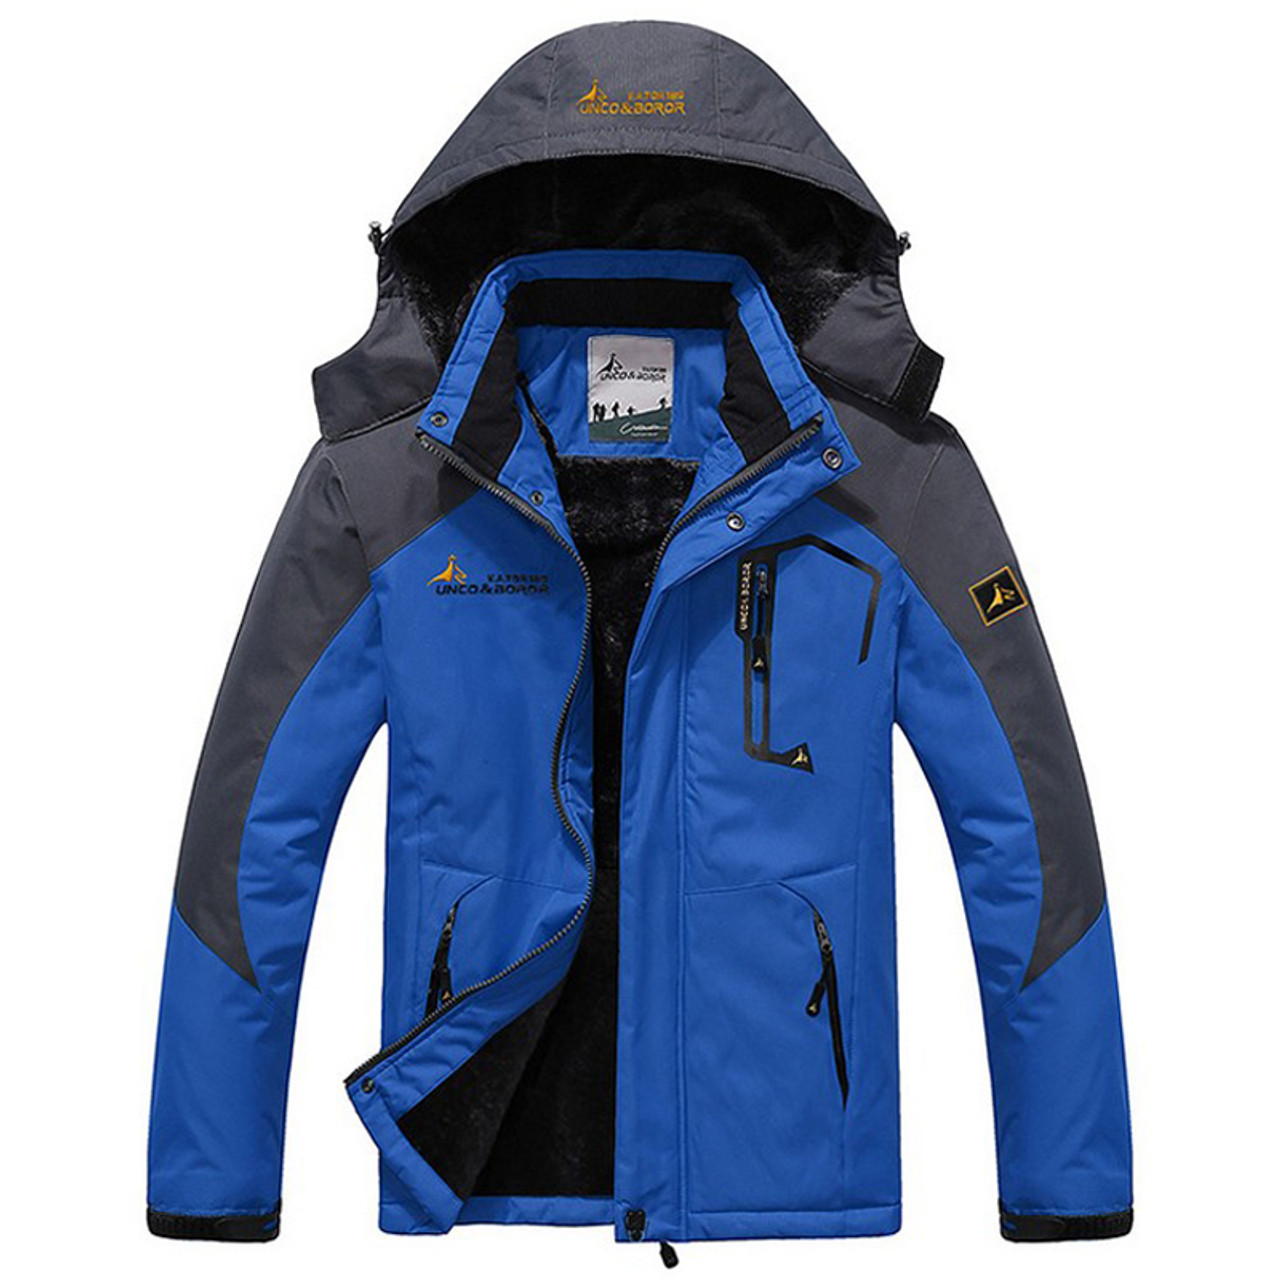 Hiking Jackets 2019 Winter Outdoor Sports Hooded Down Coat Mens Warm Jaqueta Light Weight Jacket Overcoat Male Windproof Thermal Padded Outwear